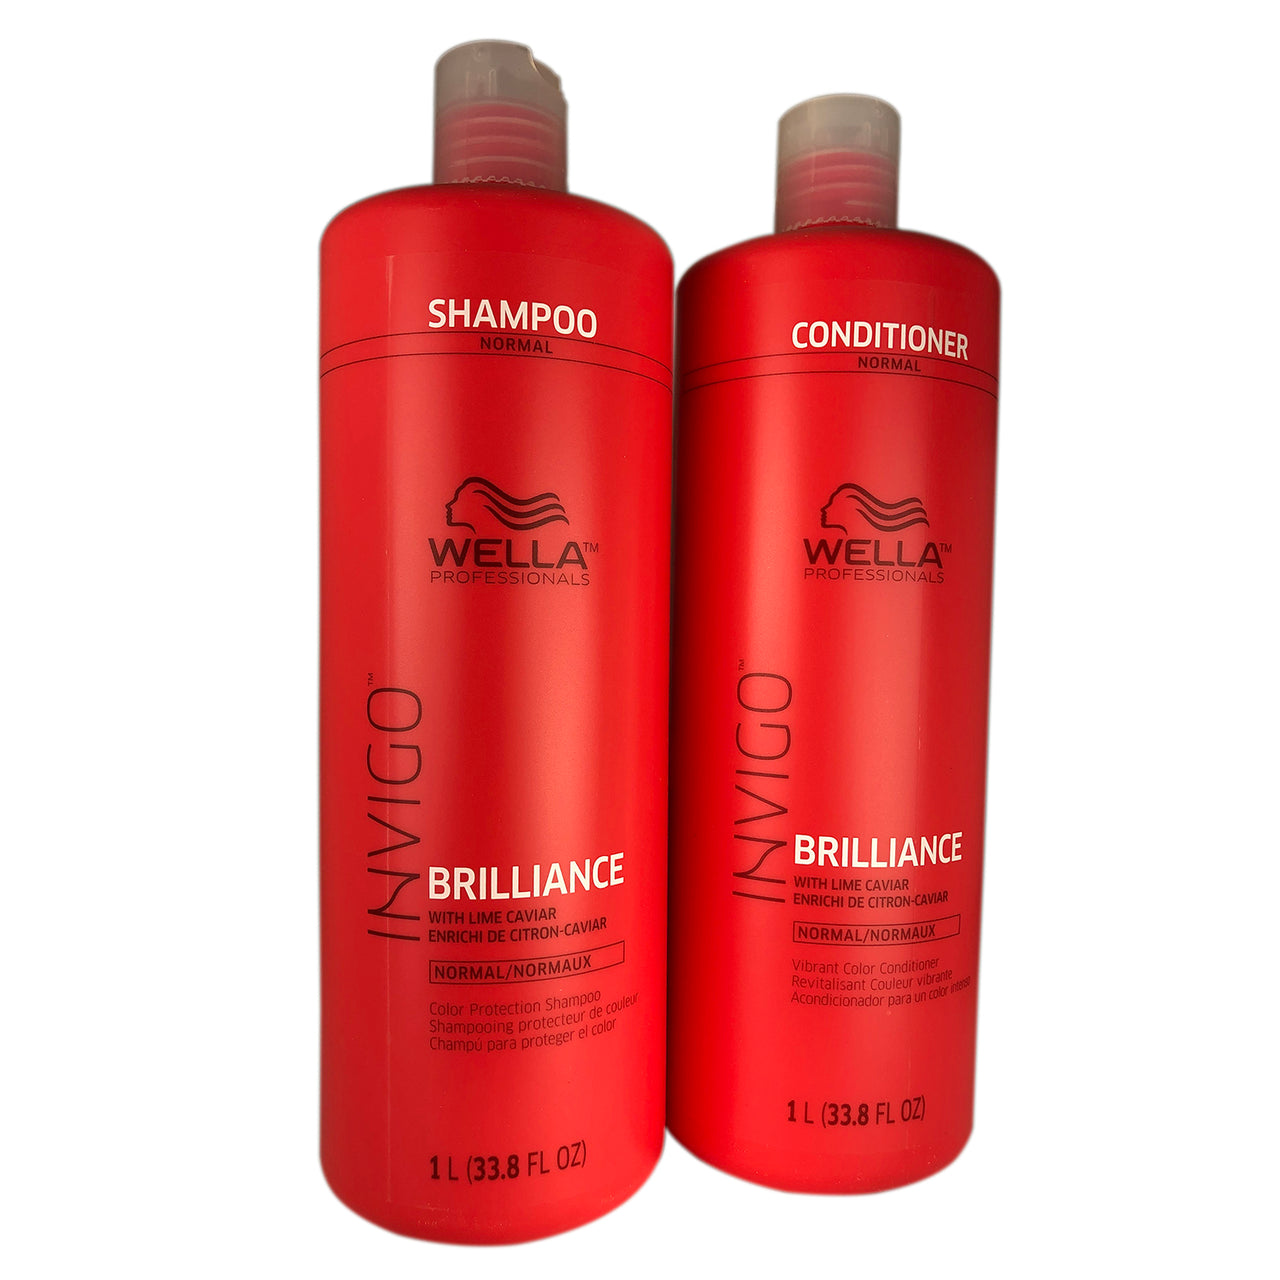 Wella Brilliance Shampoo and Conditioner Duo 33.8 oz Each Fine to Normal Hair